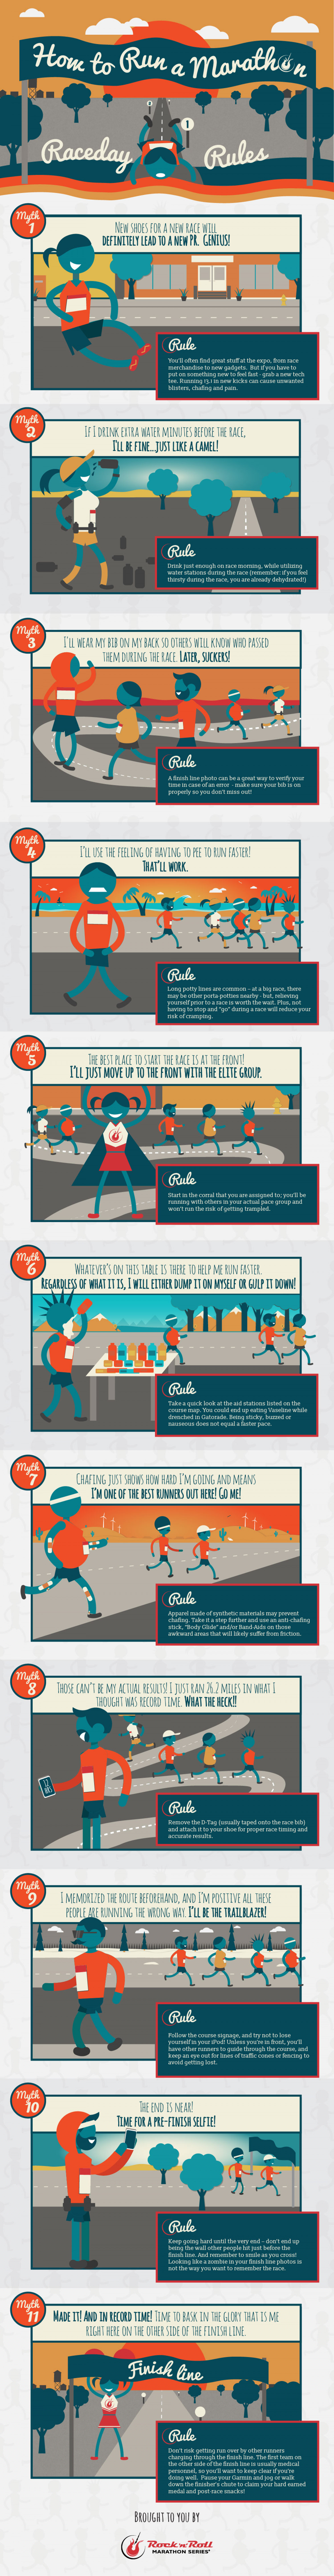 How to Run a Marathon: Raceday Rules Infographic